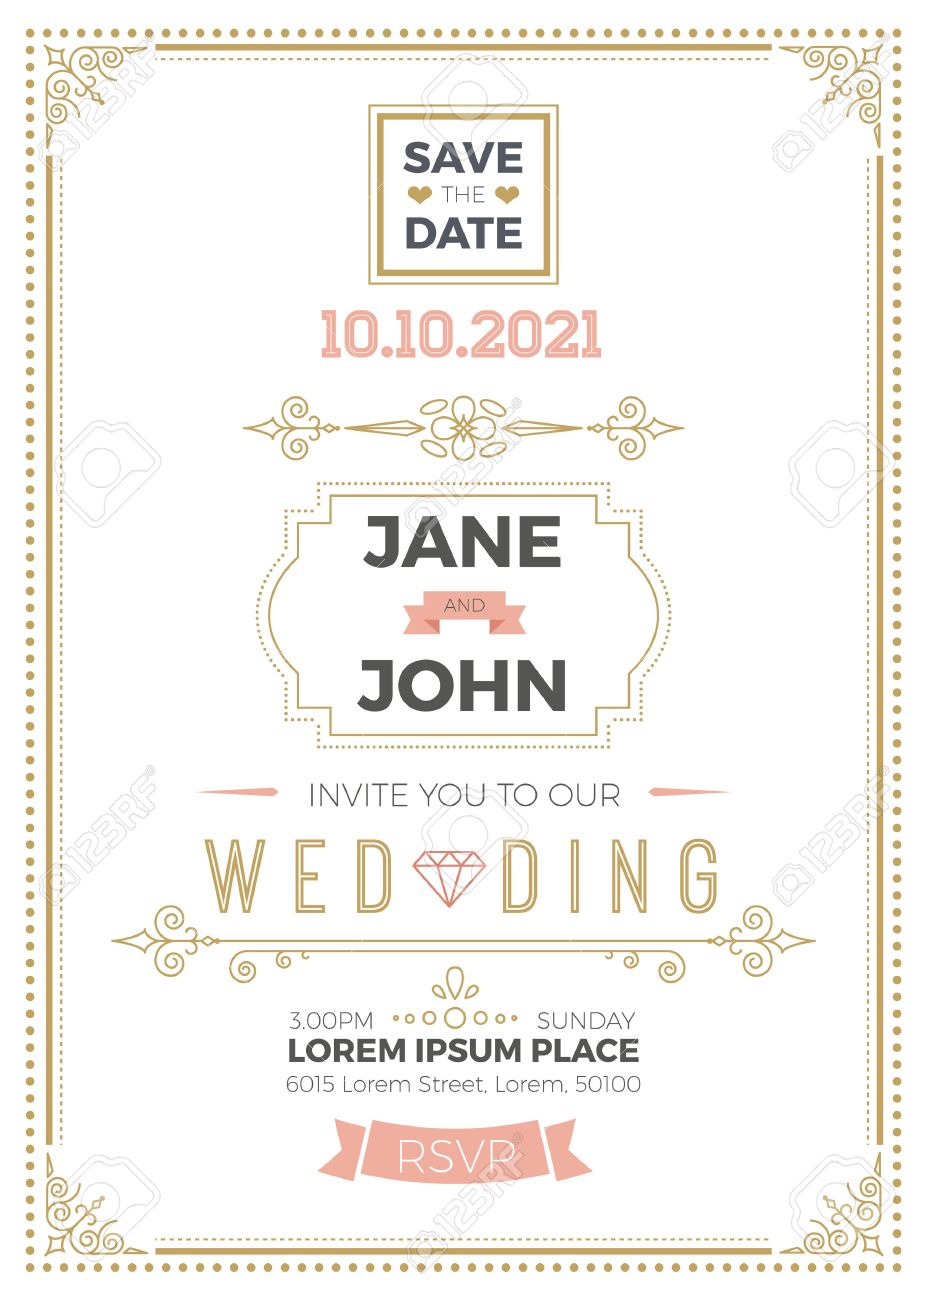 Vintage Wedding Invitation Card A5 Template With Bleed Area